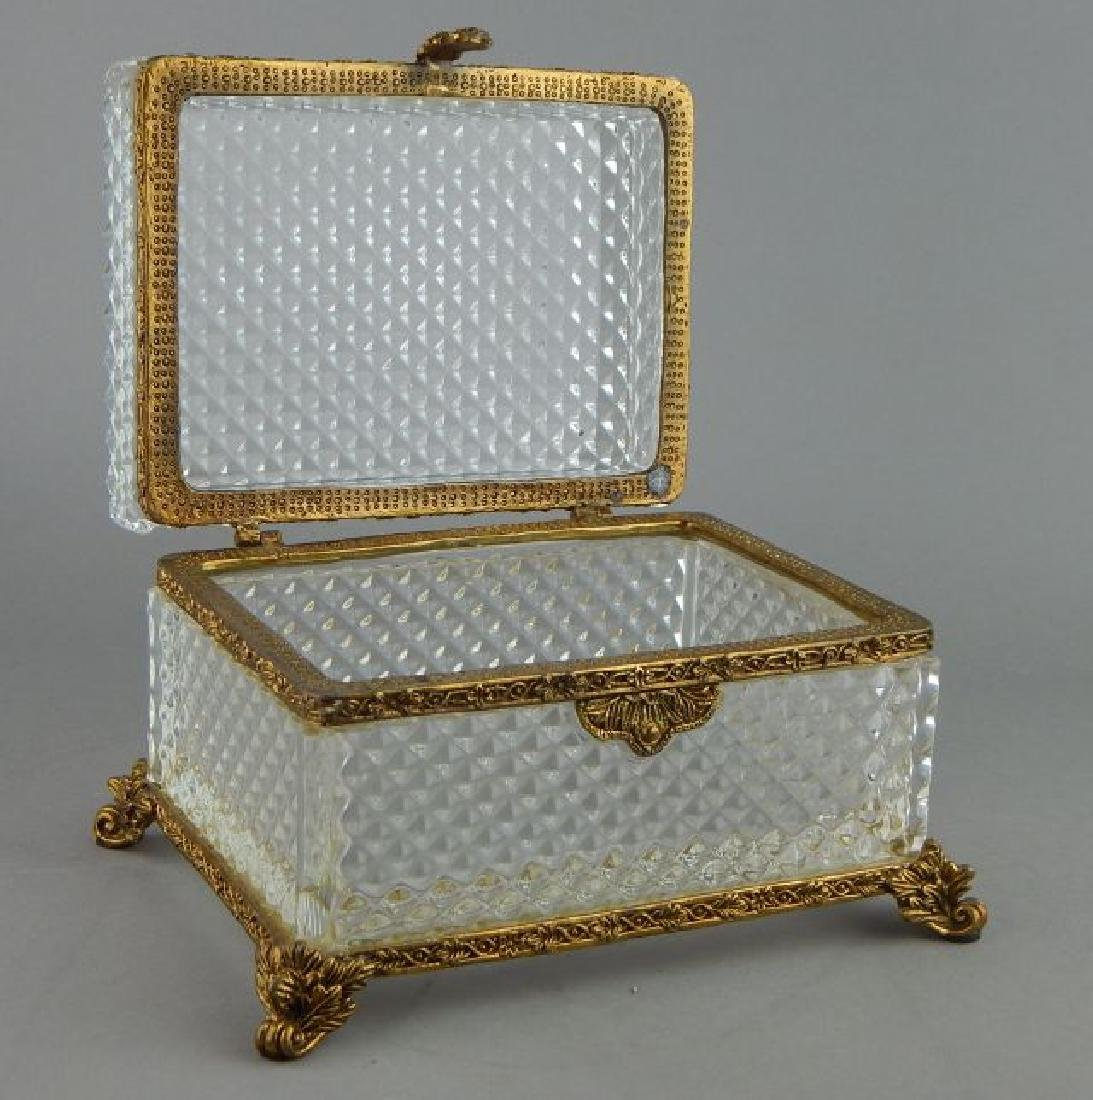 Dore Bronze Mounted Baccarat Crystal Box - 5